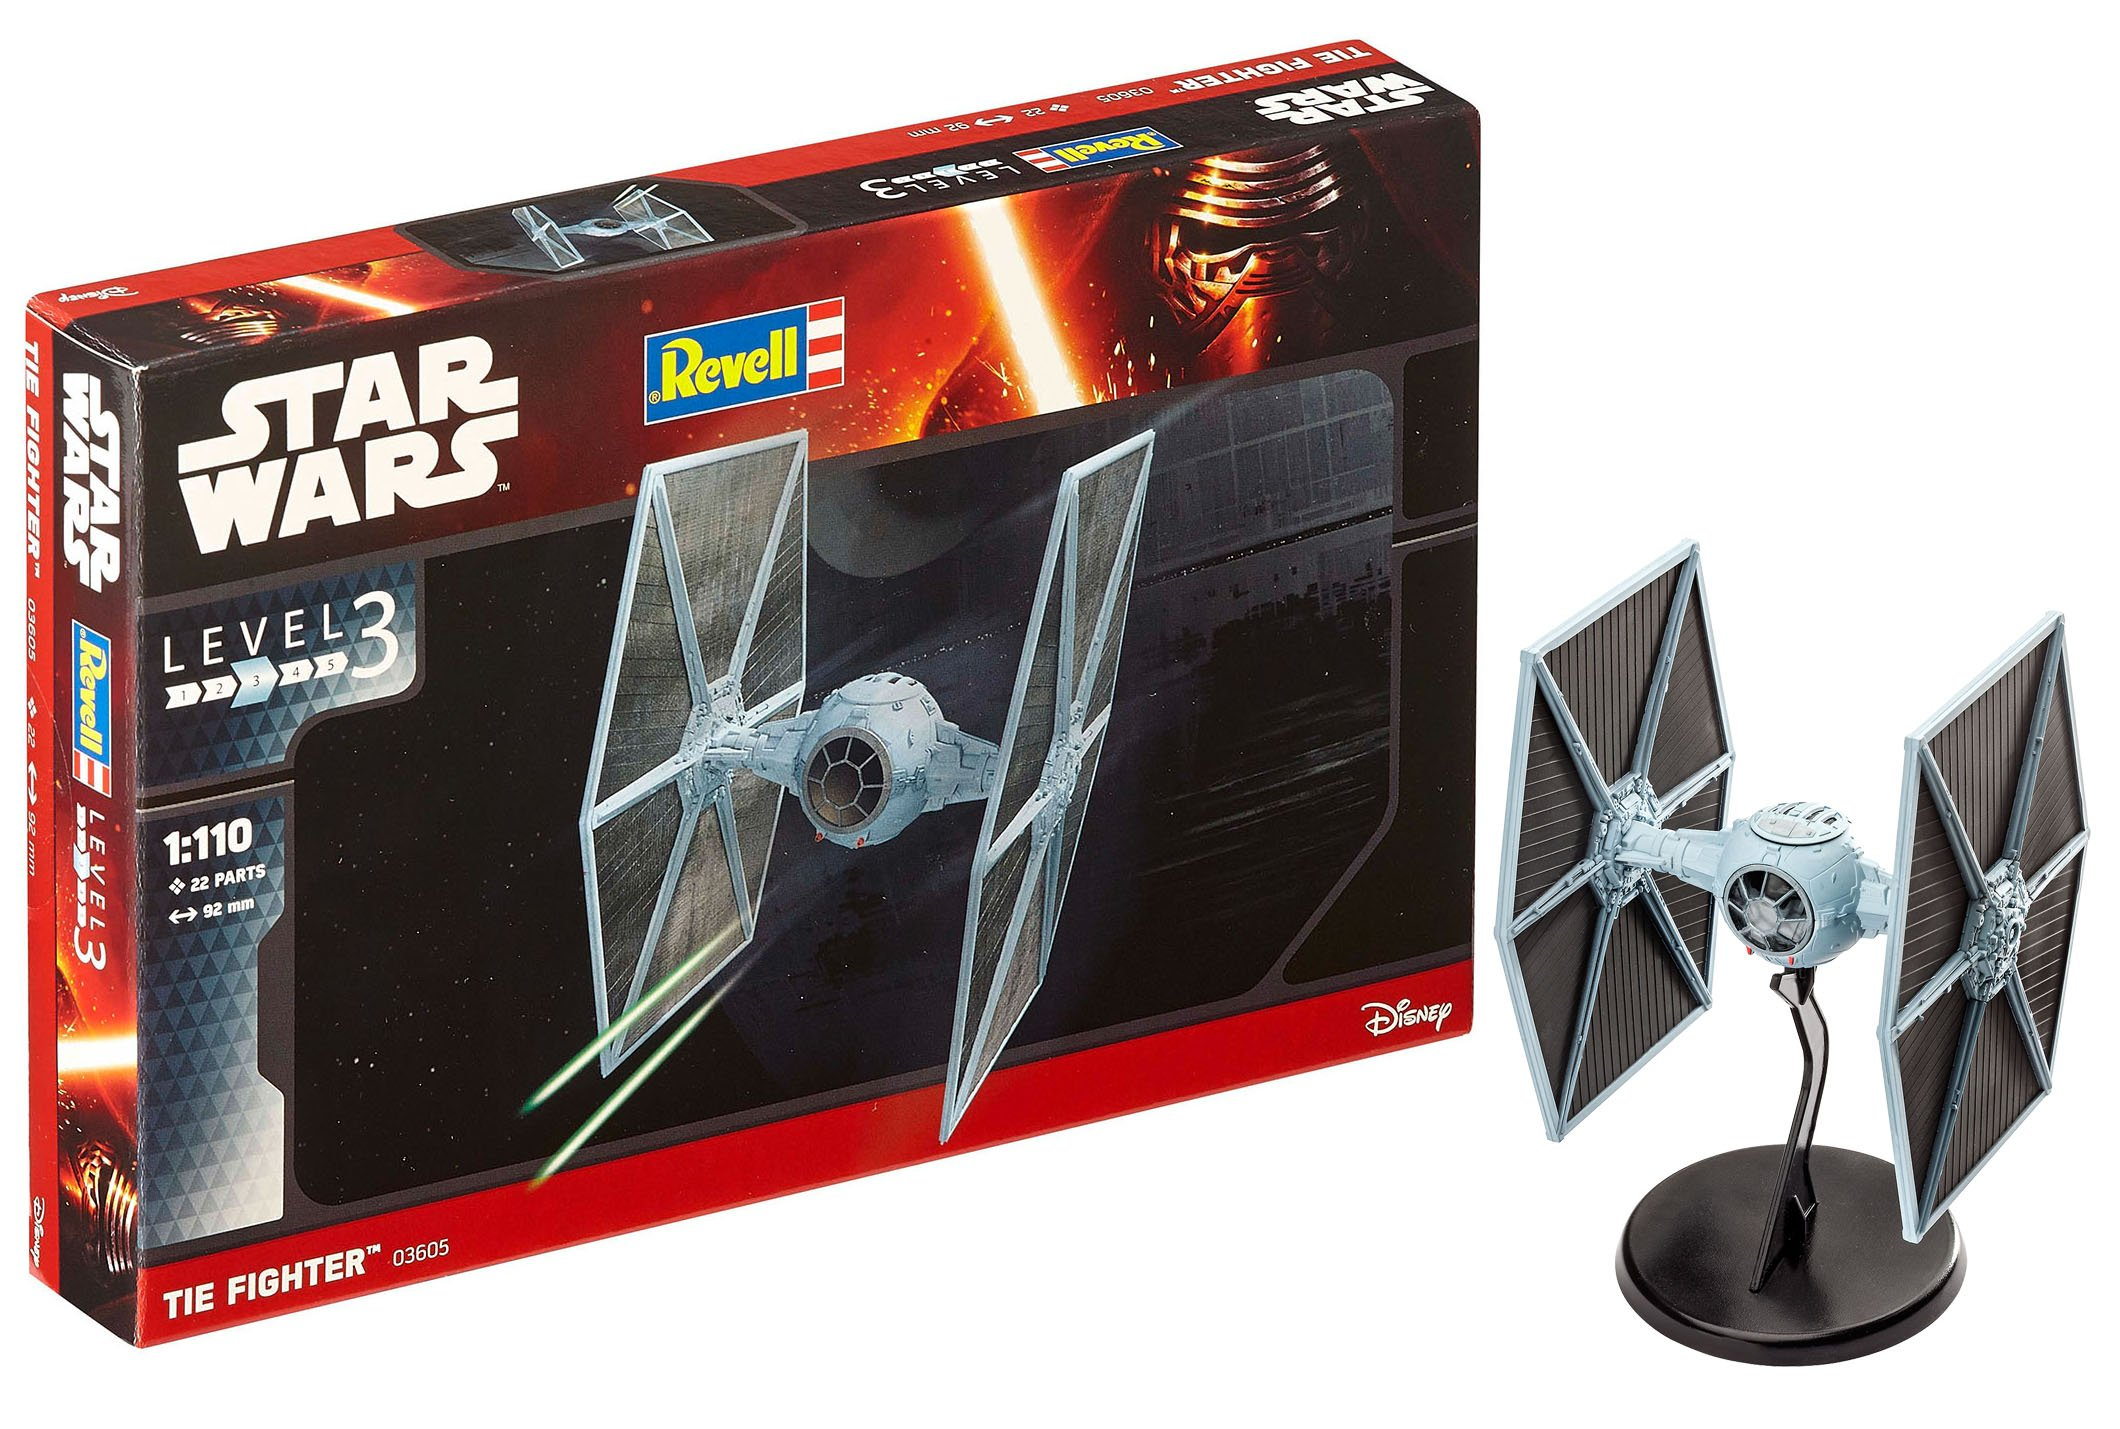 Revell Star Wars Tie Fighter, Kit modele, Escala 1:110 (03605) product image